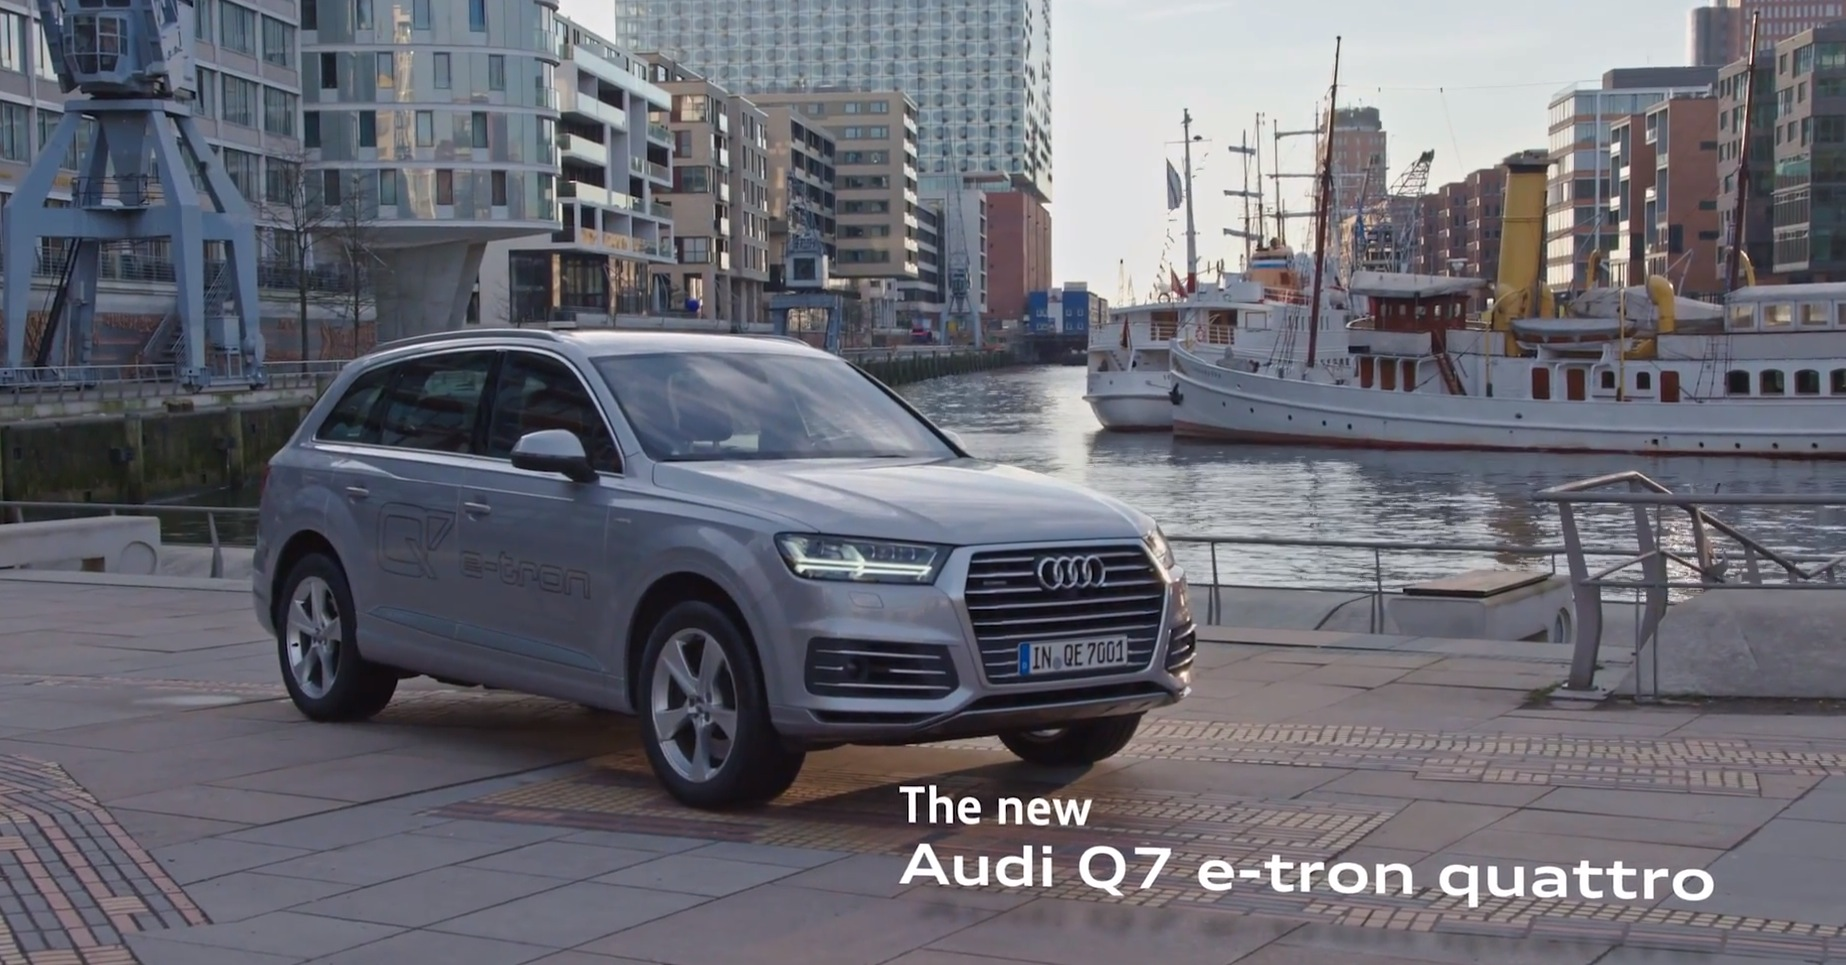 2016 audi q7 e tron diesel phev makes video debut with electric city driving autoevolution. Black Bedroom Furniture Sets. Home Design Ideas